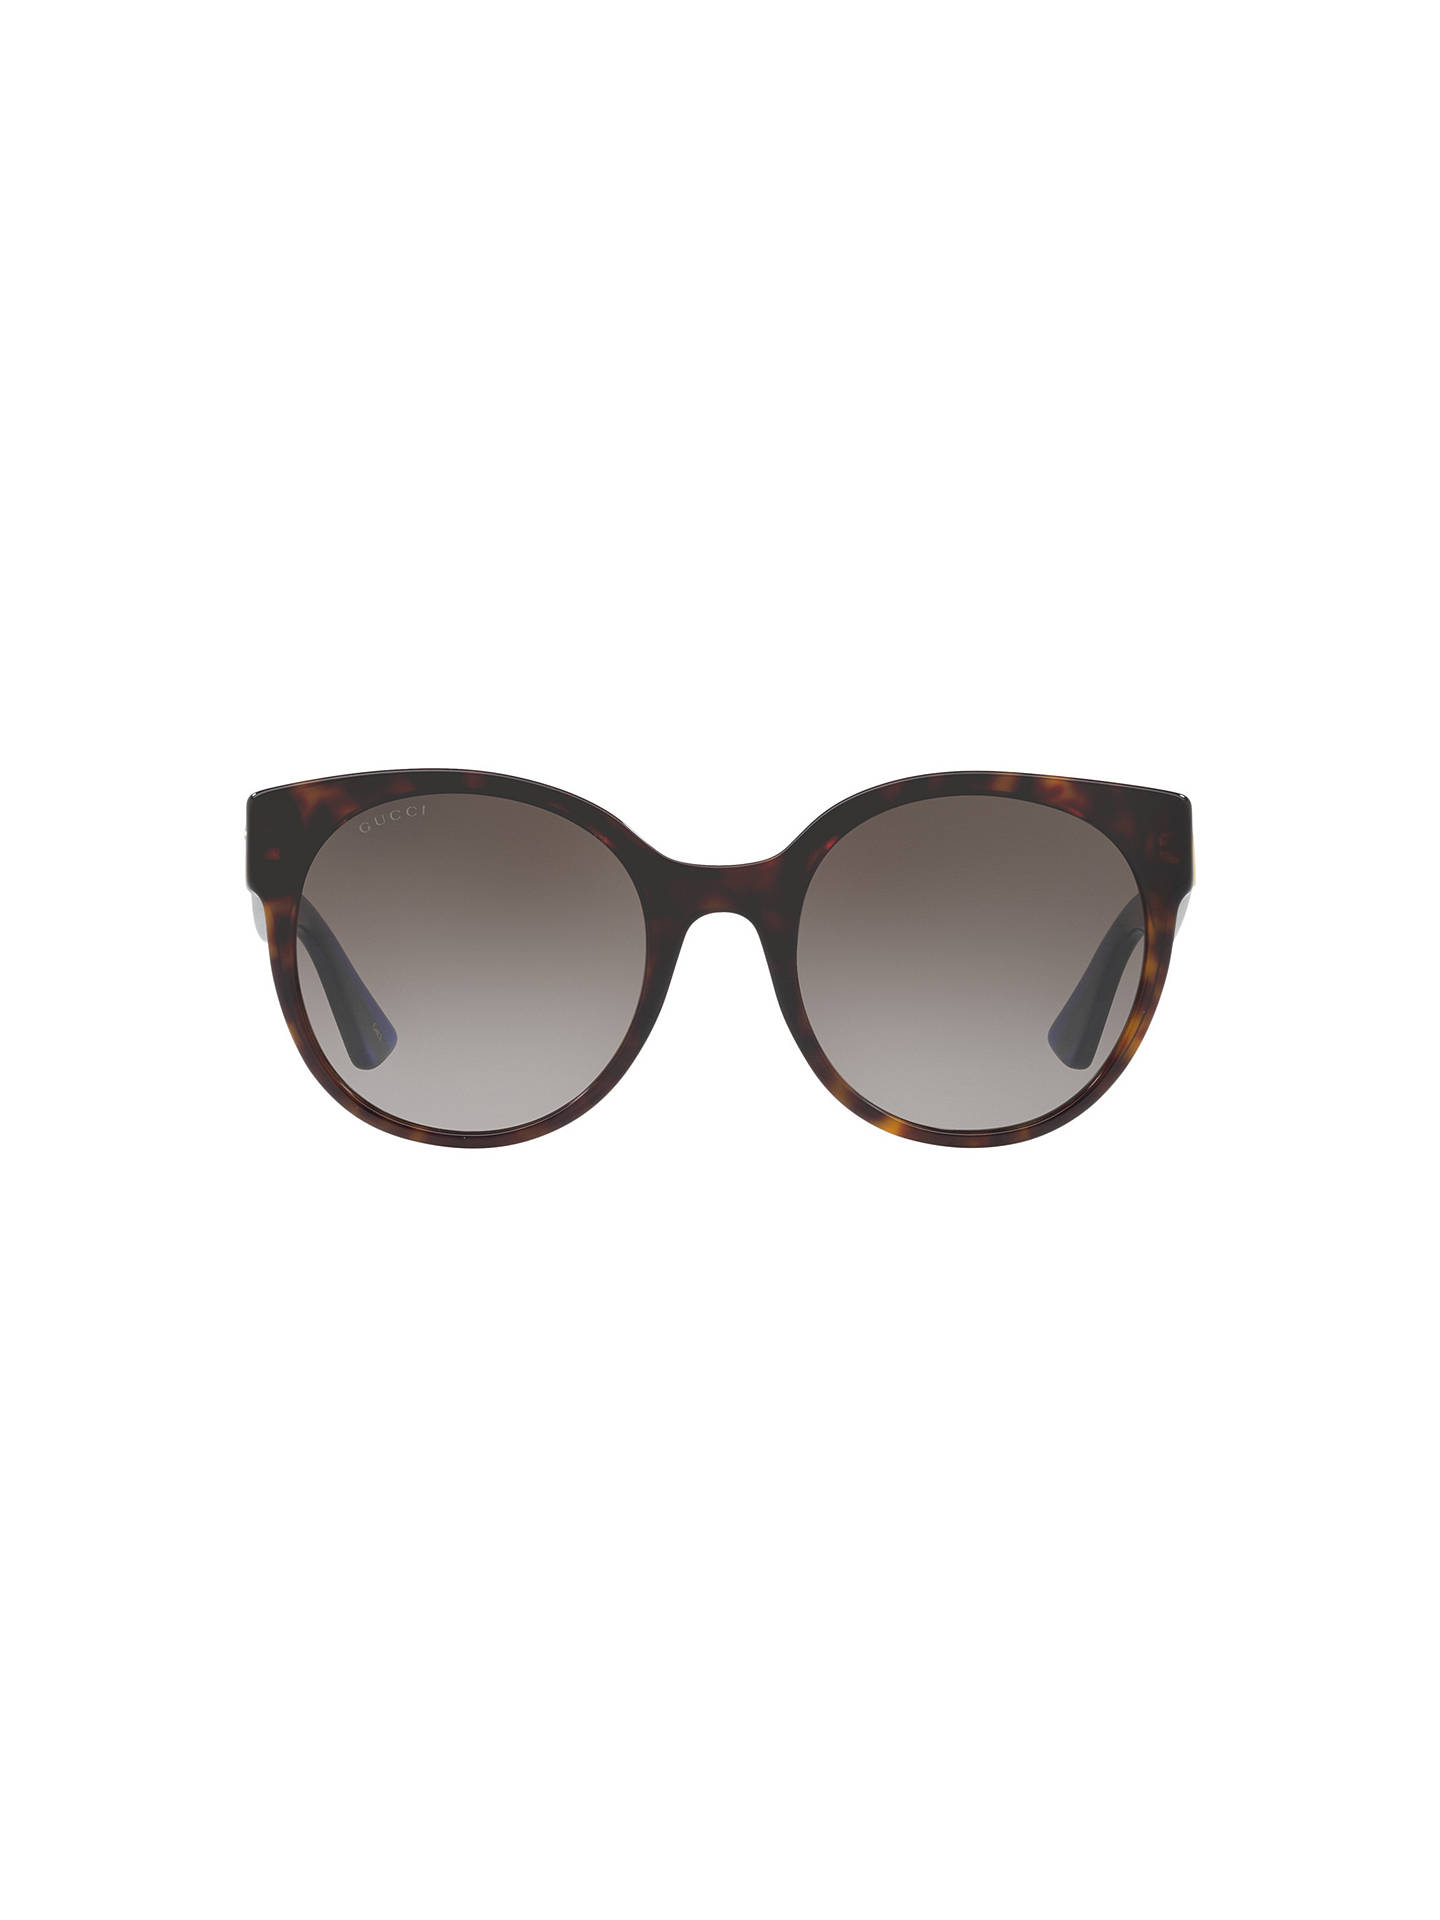 b42b5fab76 Gucci GG0035S Women s Oval Sunglasses at John Lewis   Partners